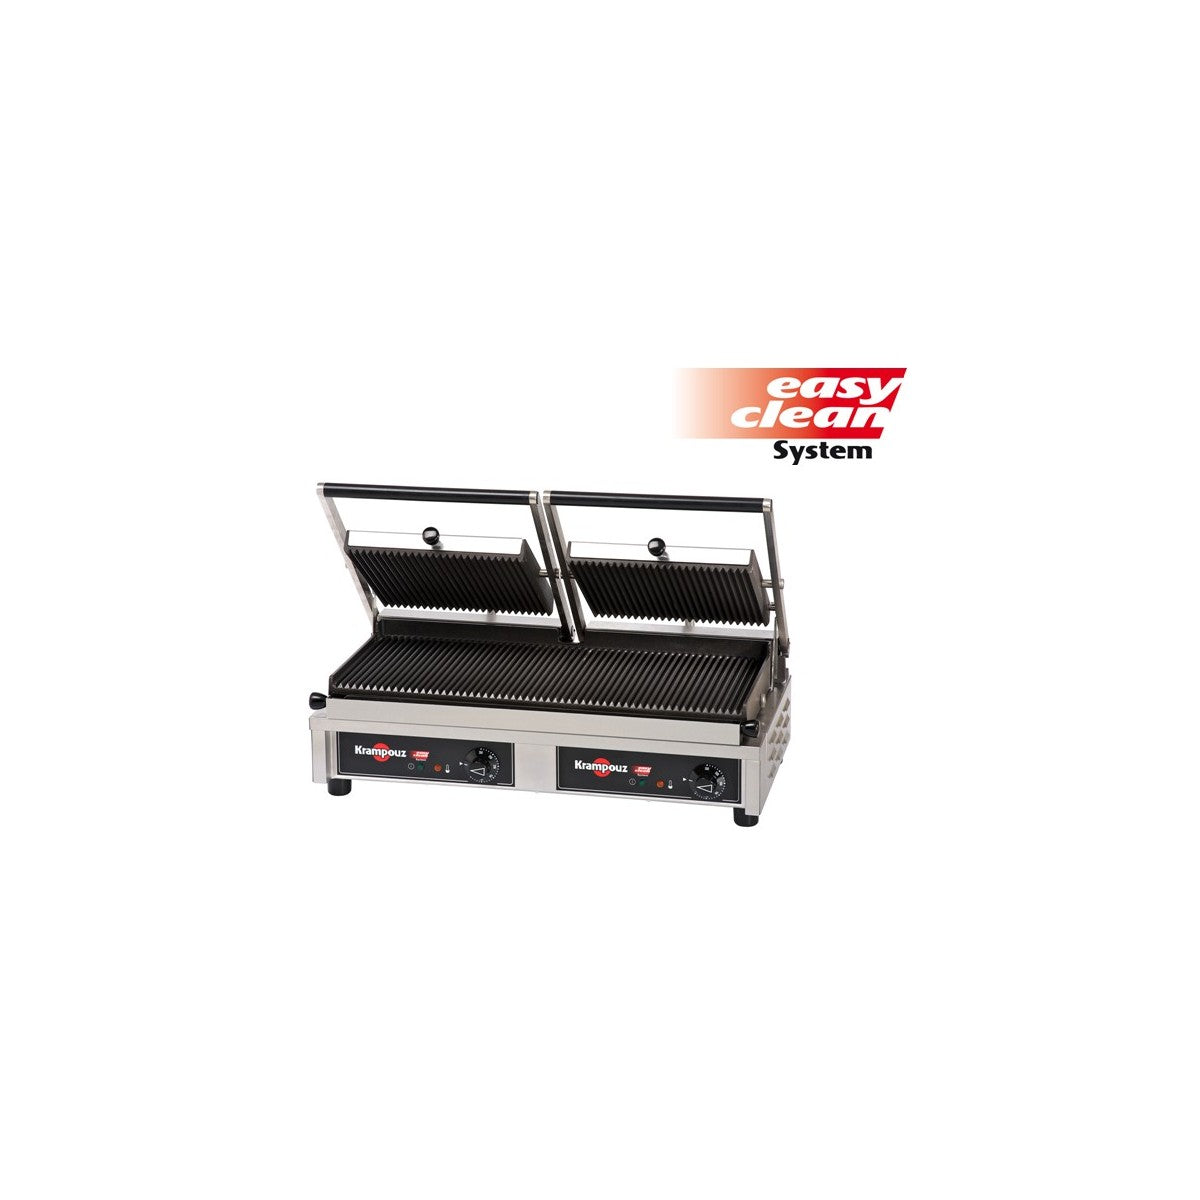 GECID5BO - Multi Contact Grill Large - Ribbed plates top, smooth plate bottom - Krmpouz